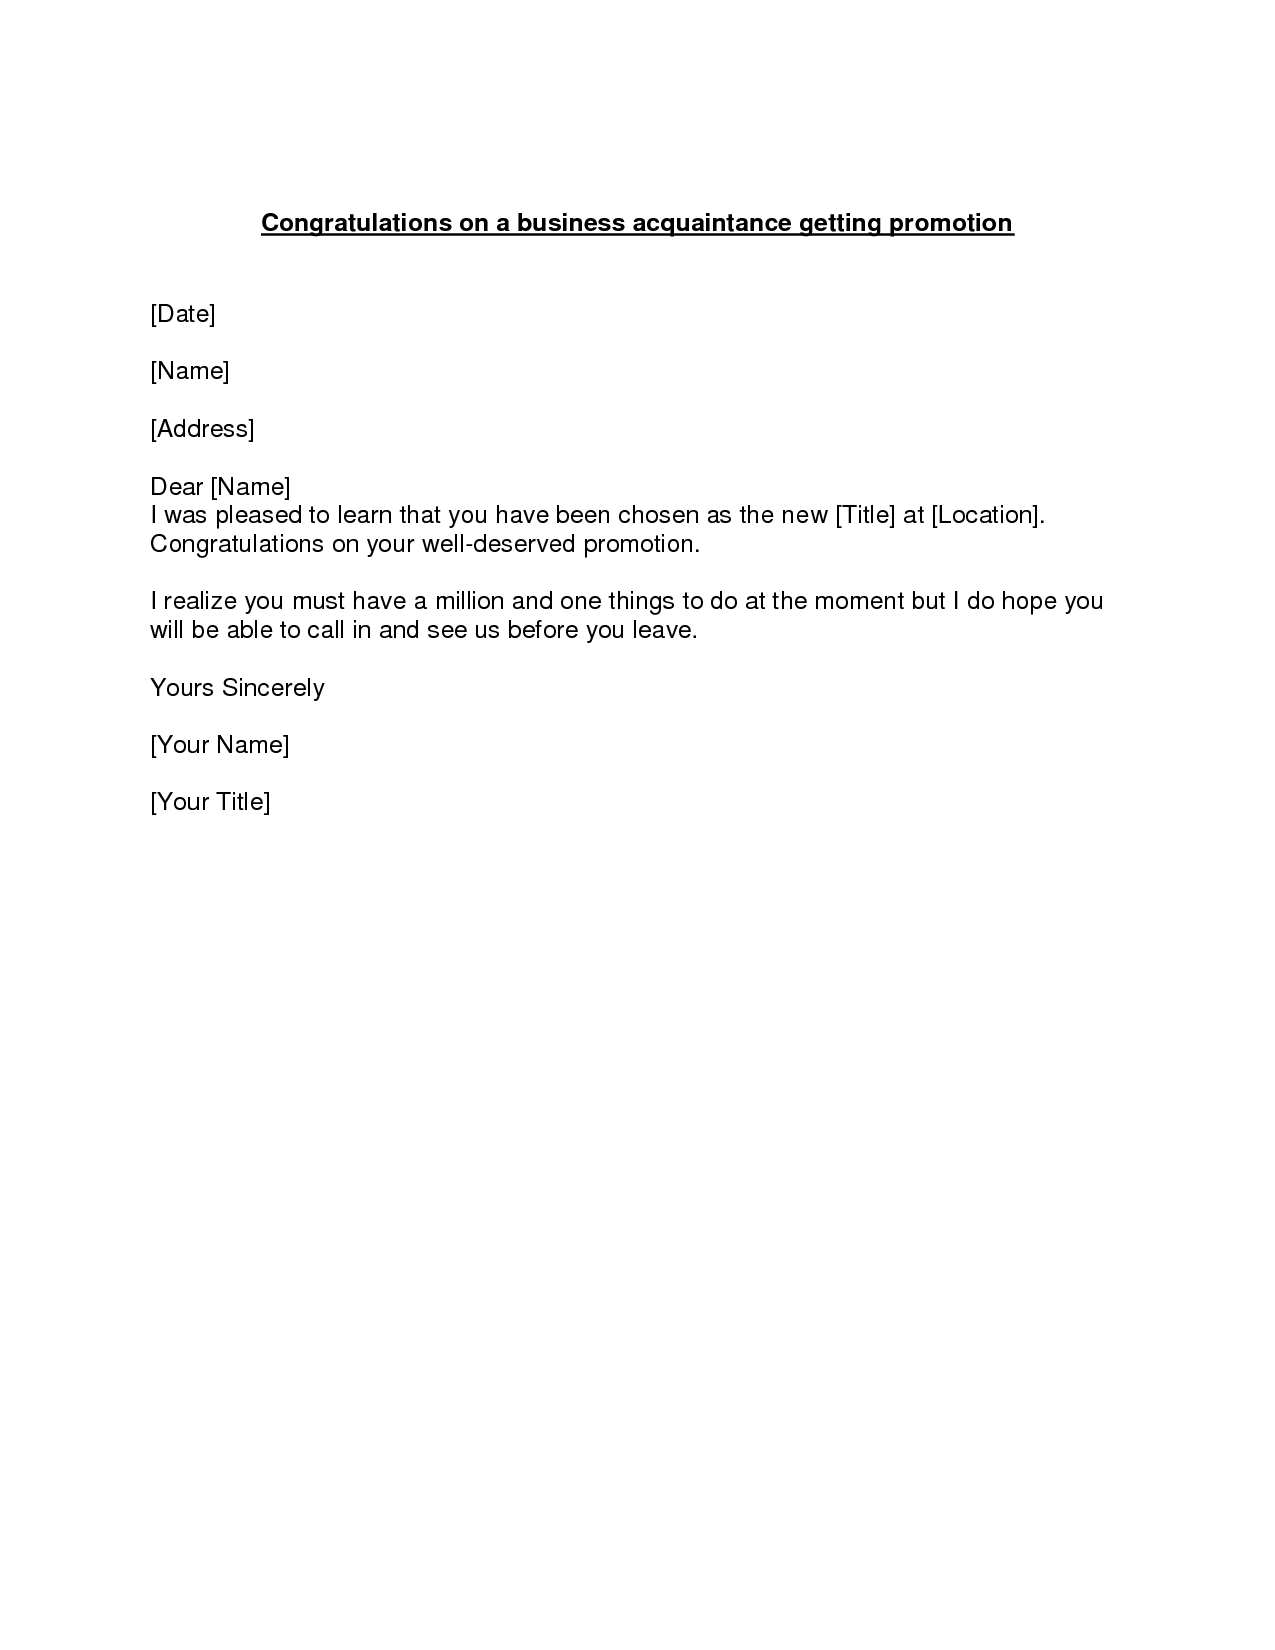 promotion congratulations letter example of a congratulations letter to send to a business associate who